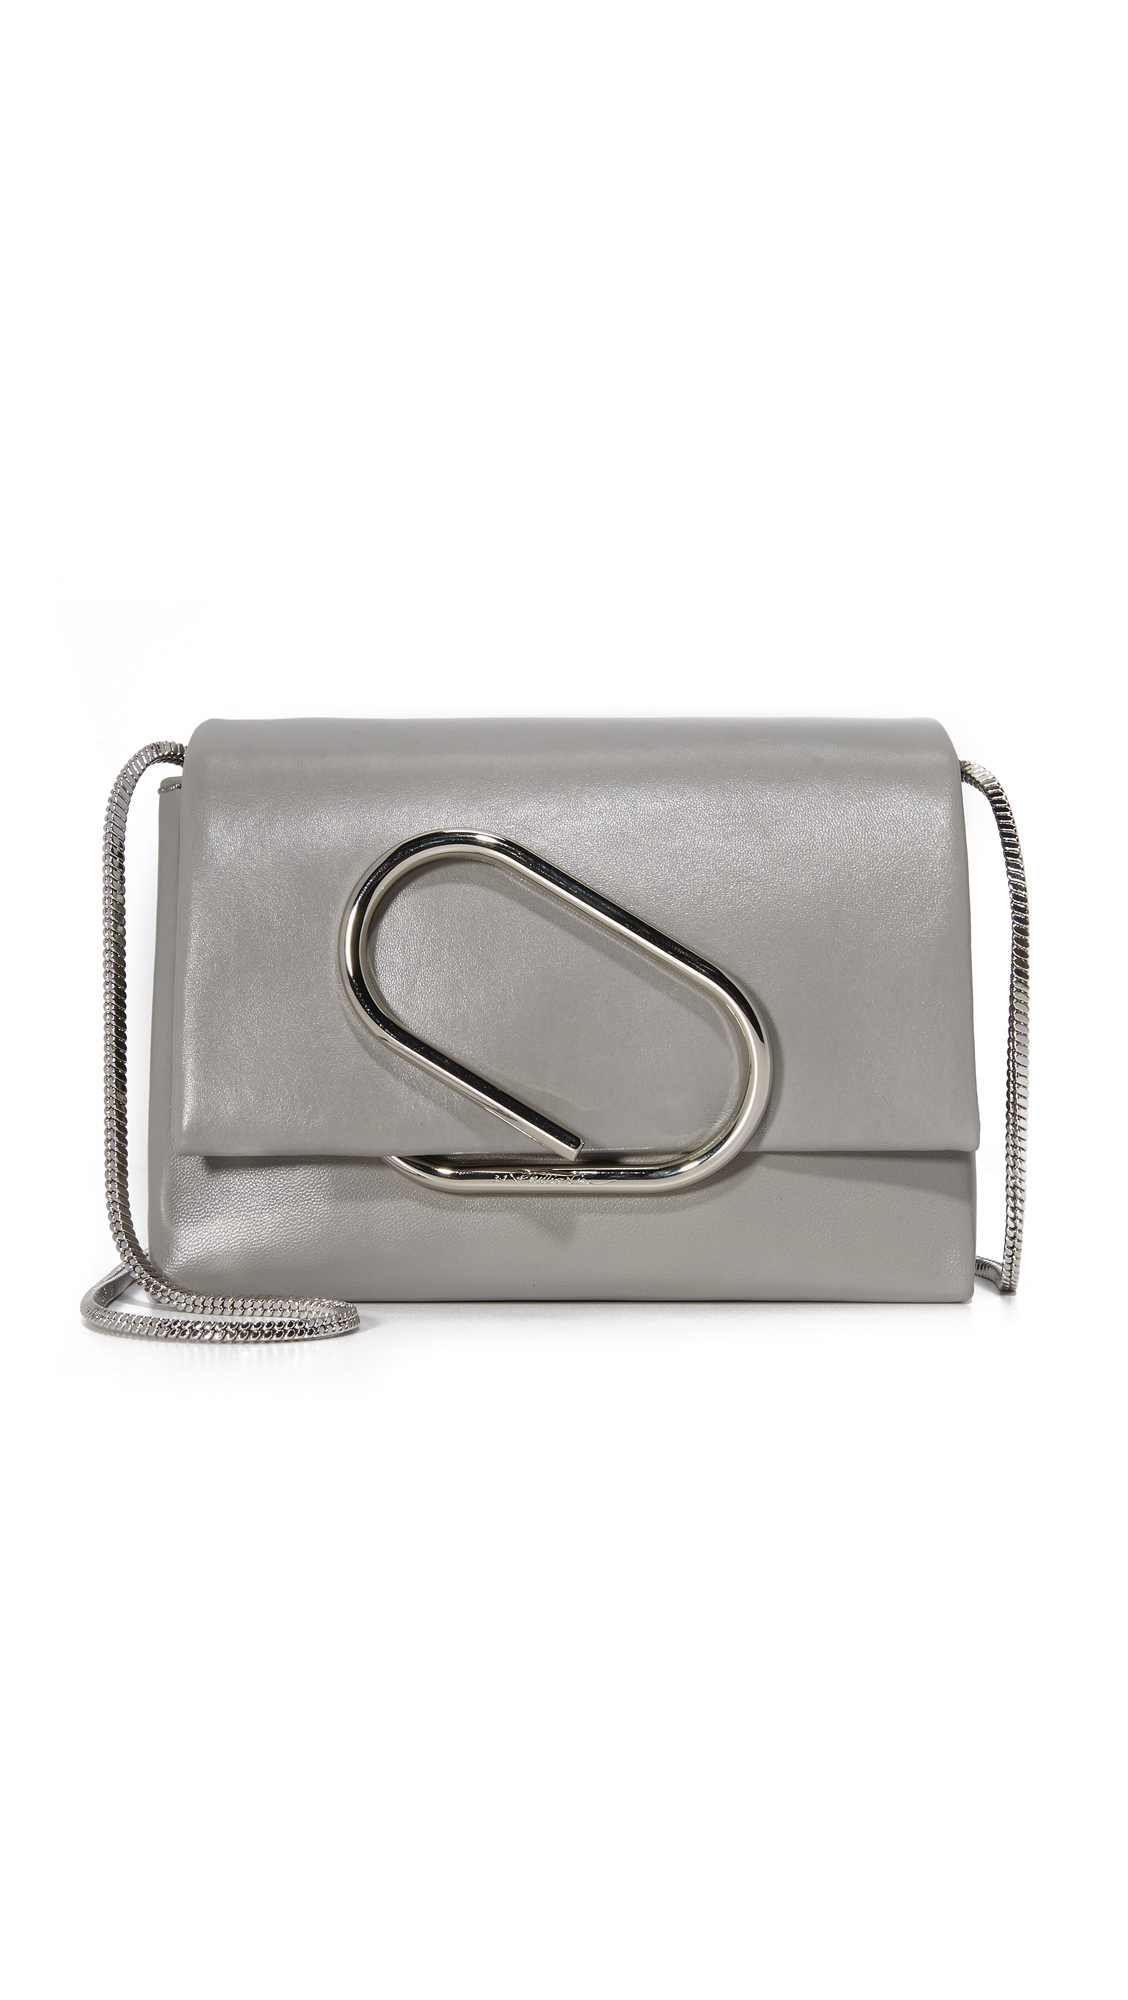 3.1 Phillip Lim Alix Micro Cross Body Bag - Cement